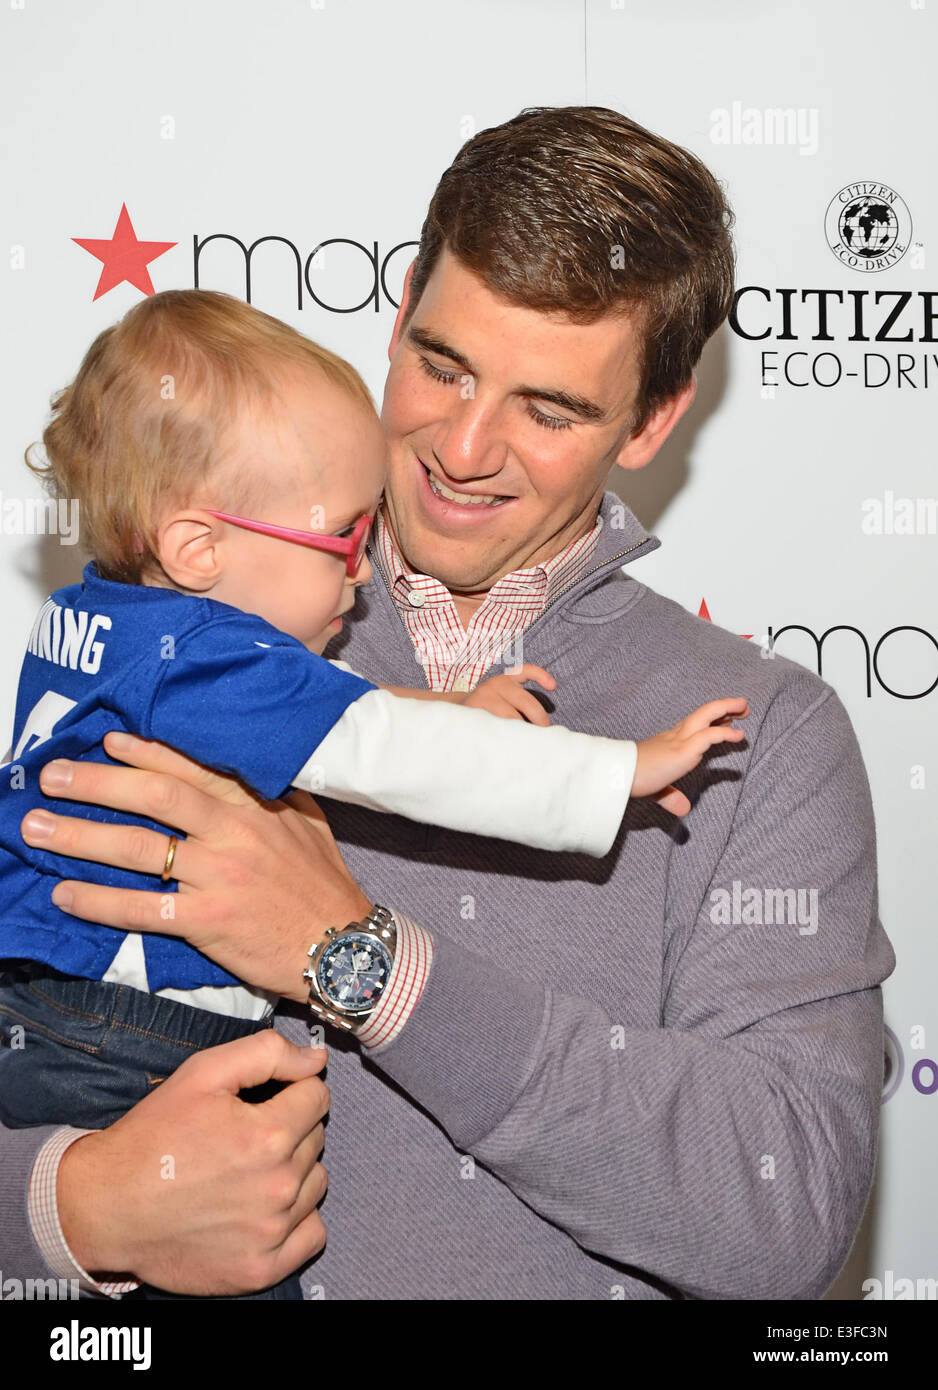 Eli Manning Meet And Greet At Macy S Garden State Plaza Mall Stock Photo Alamy